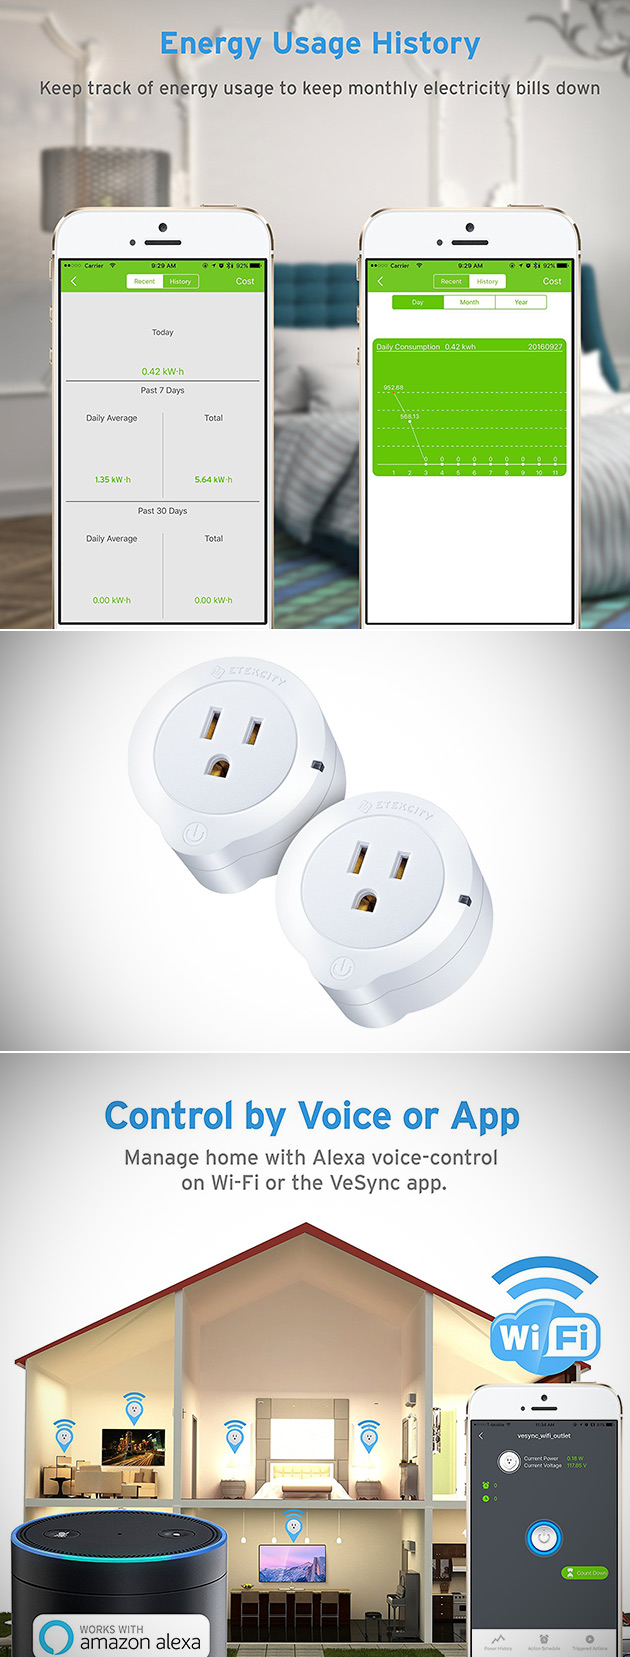 Etekcity Voltson WiFi Smart Plug (2-Pack) Can Be Controlled with